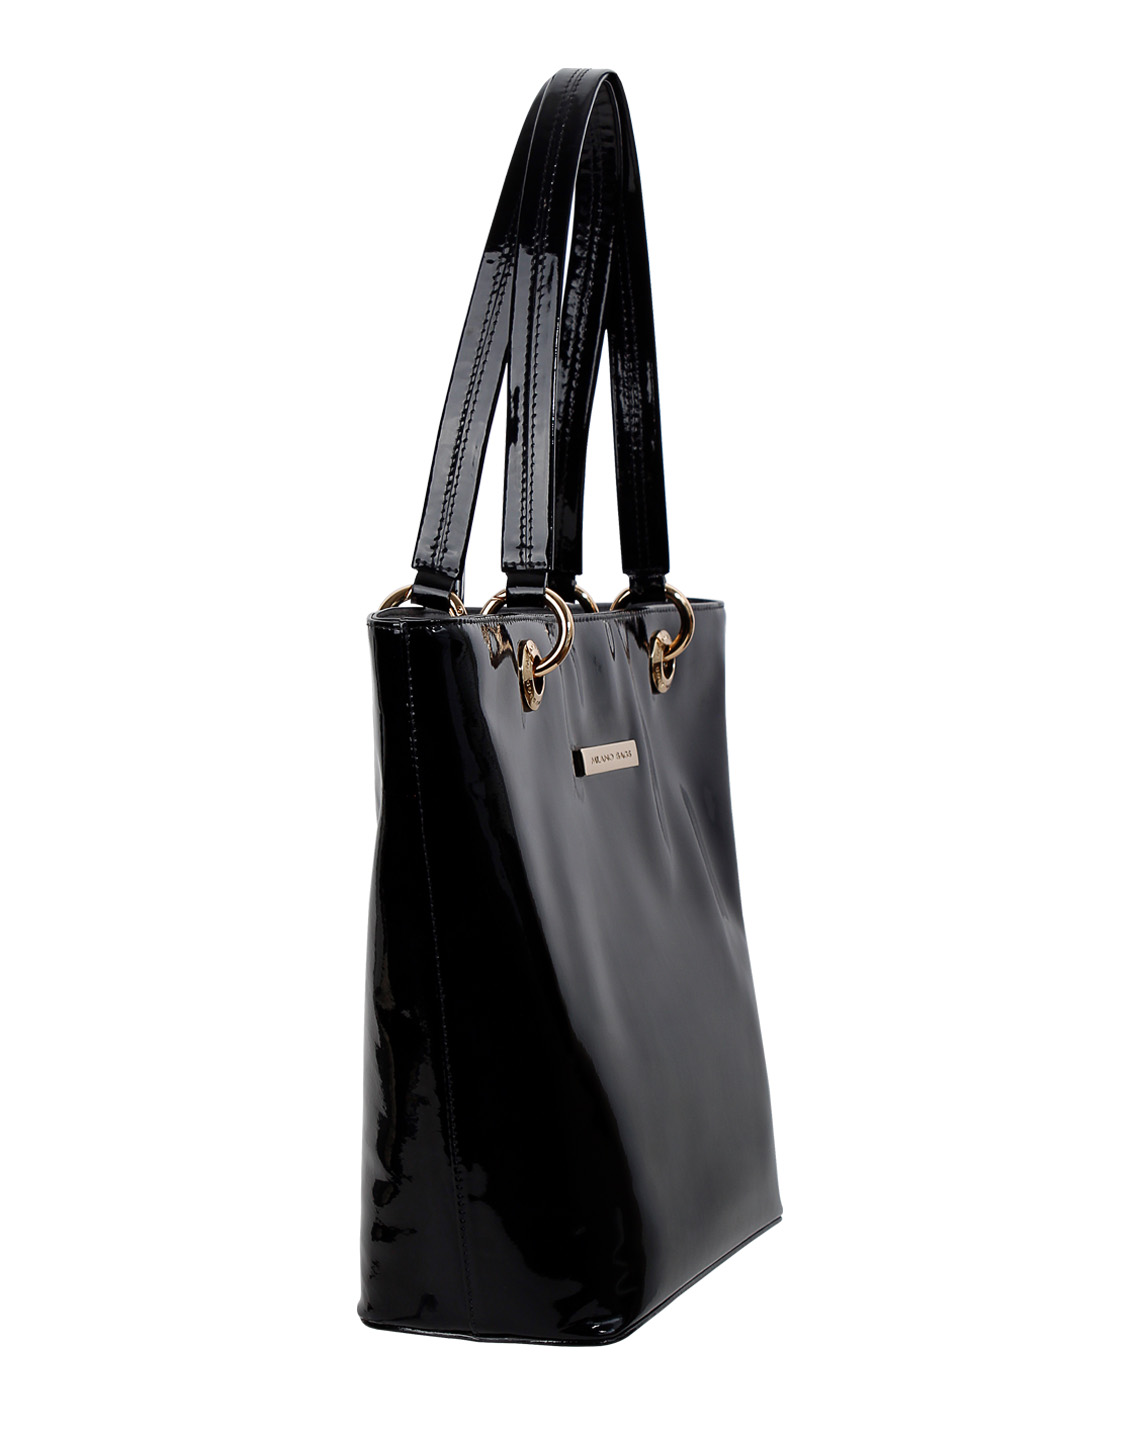 Cartera Tote Bag DS-2530 Color Negro